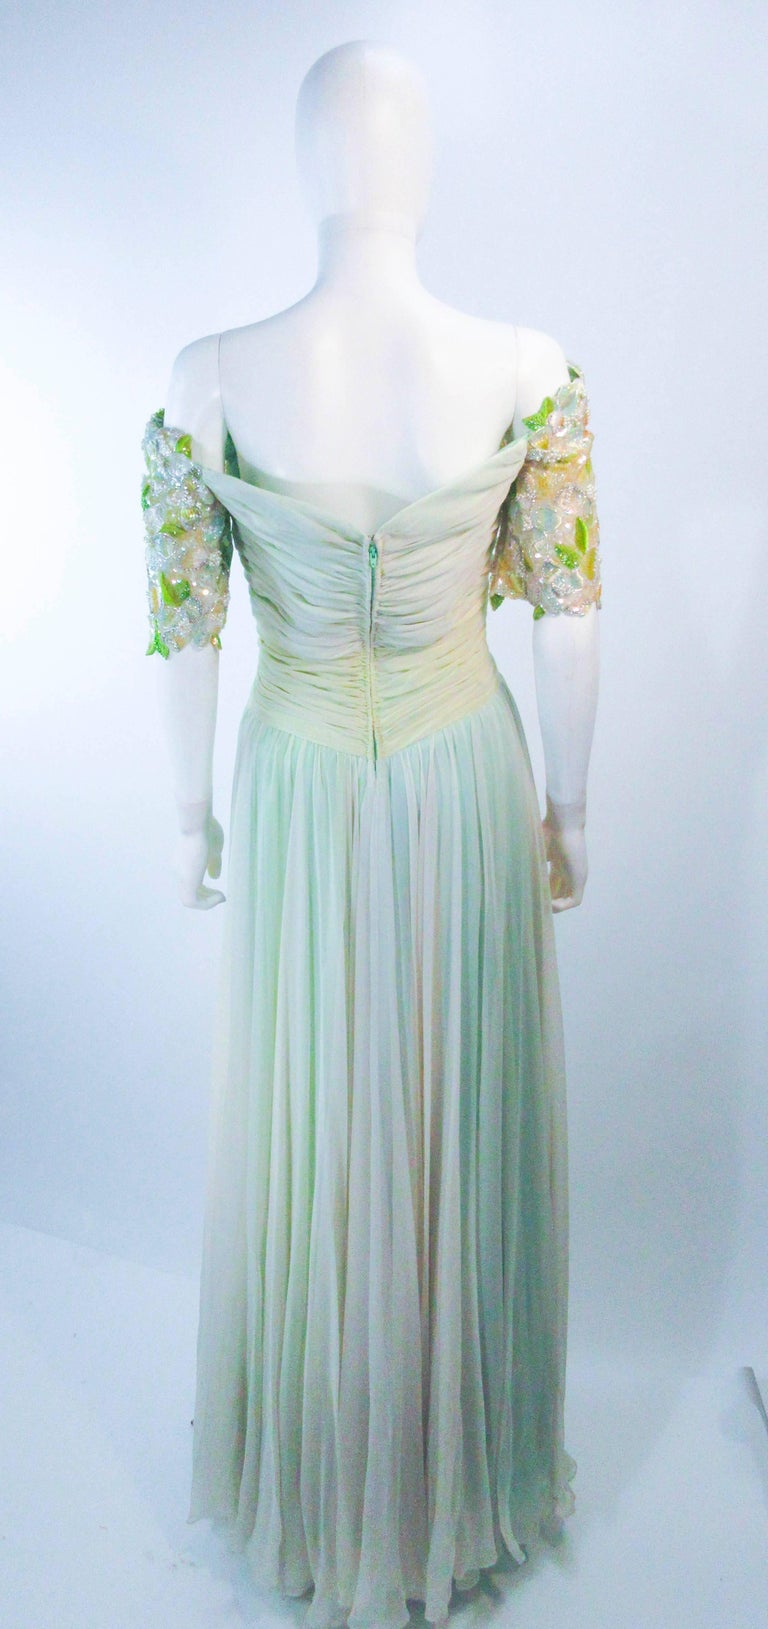 BOB MACKIE Green Chiffon Flower Embellished Gown Size 2 4 For Sale 5